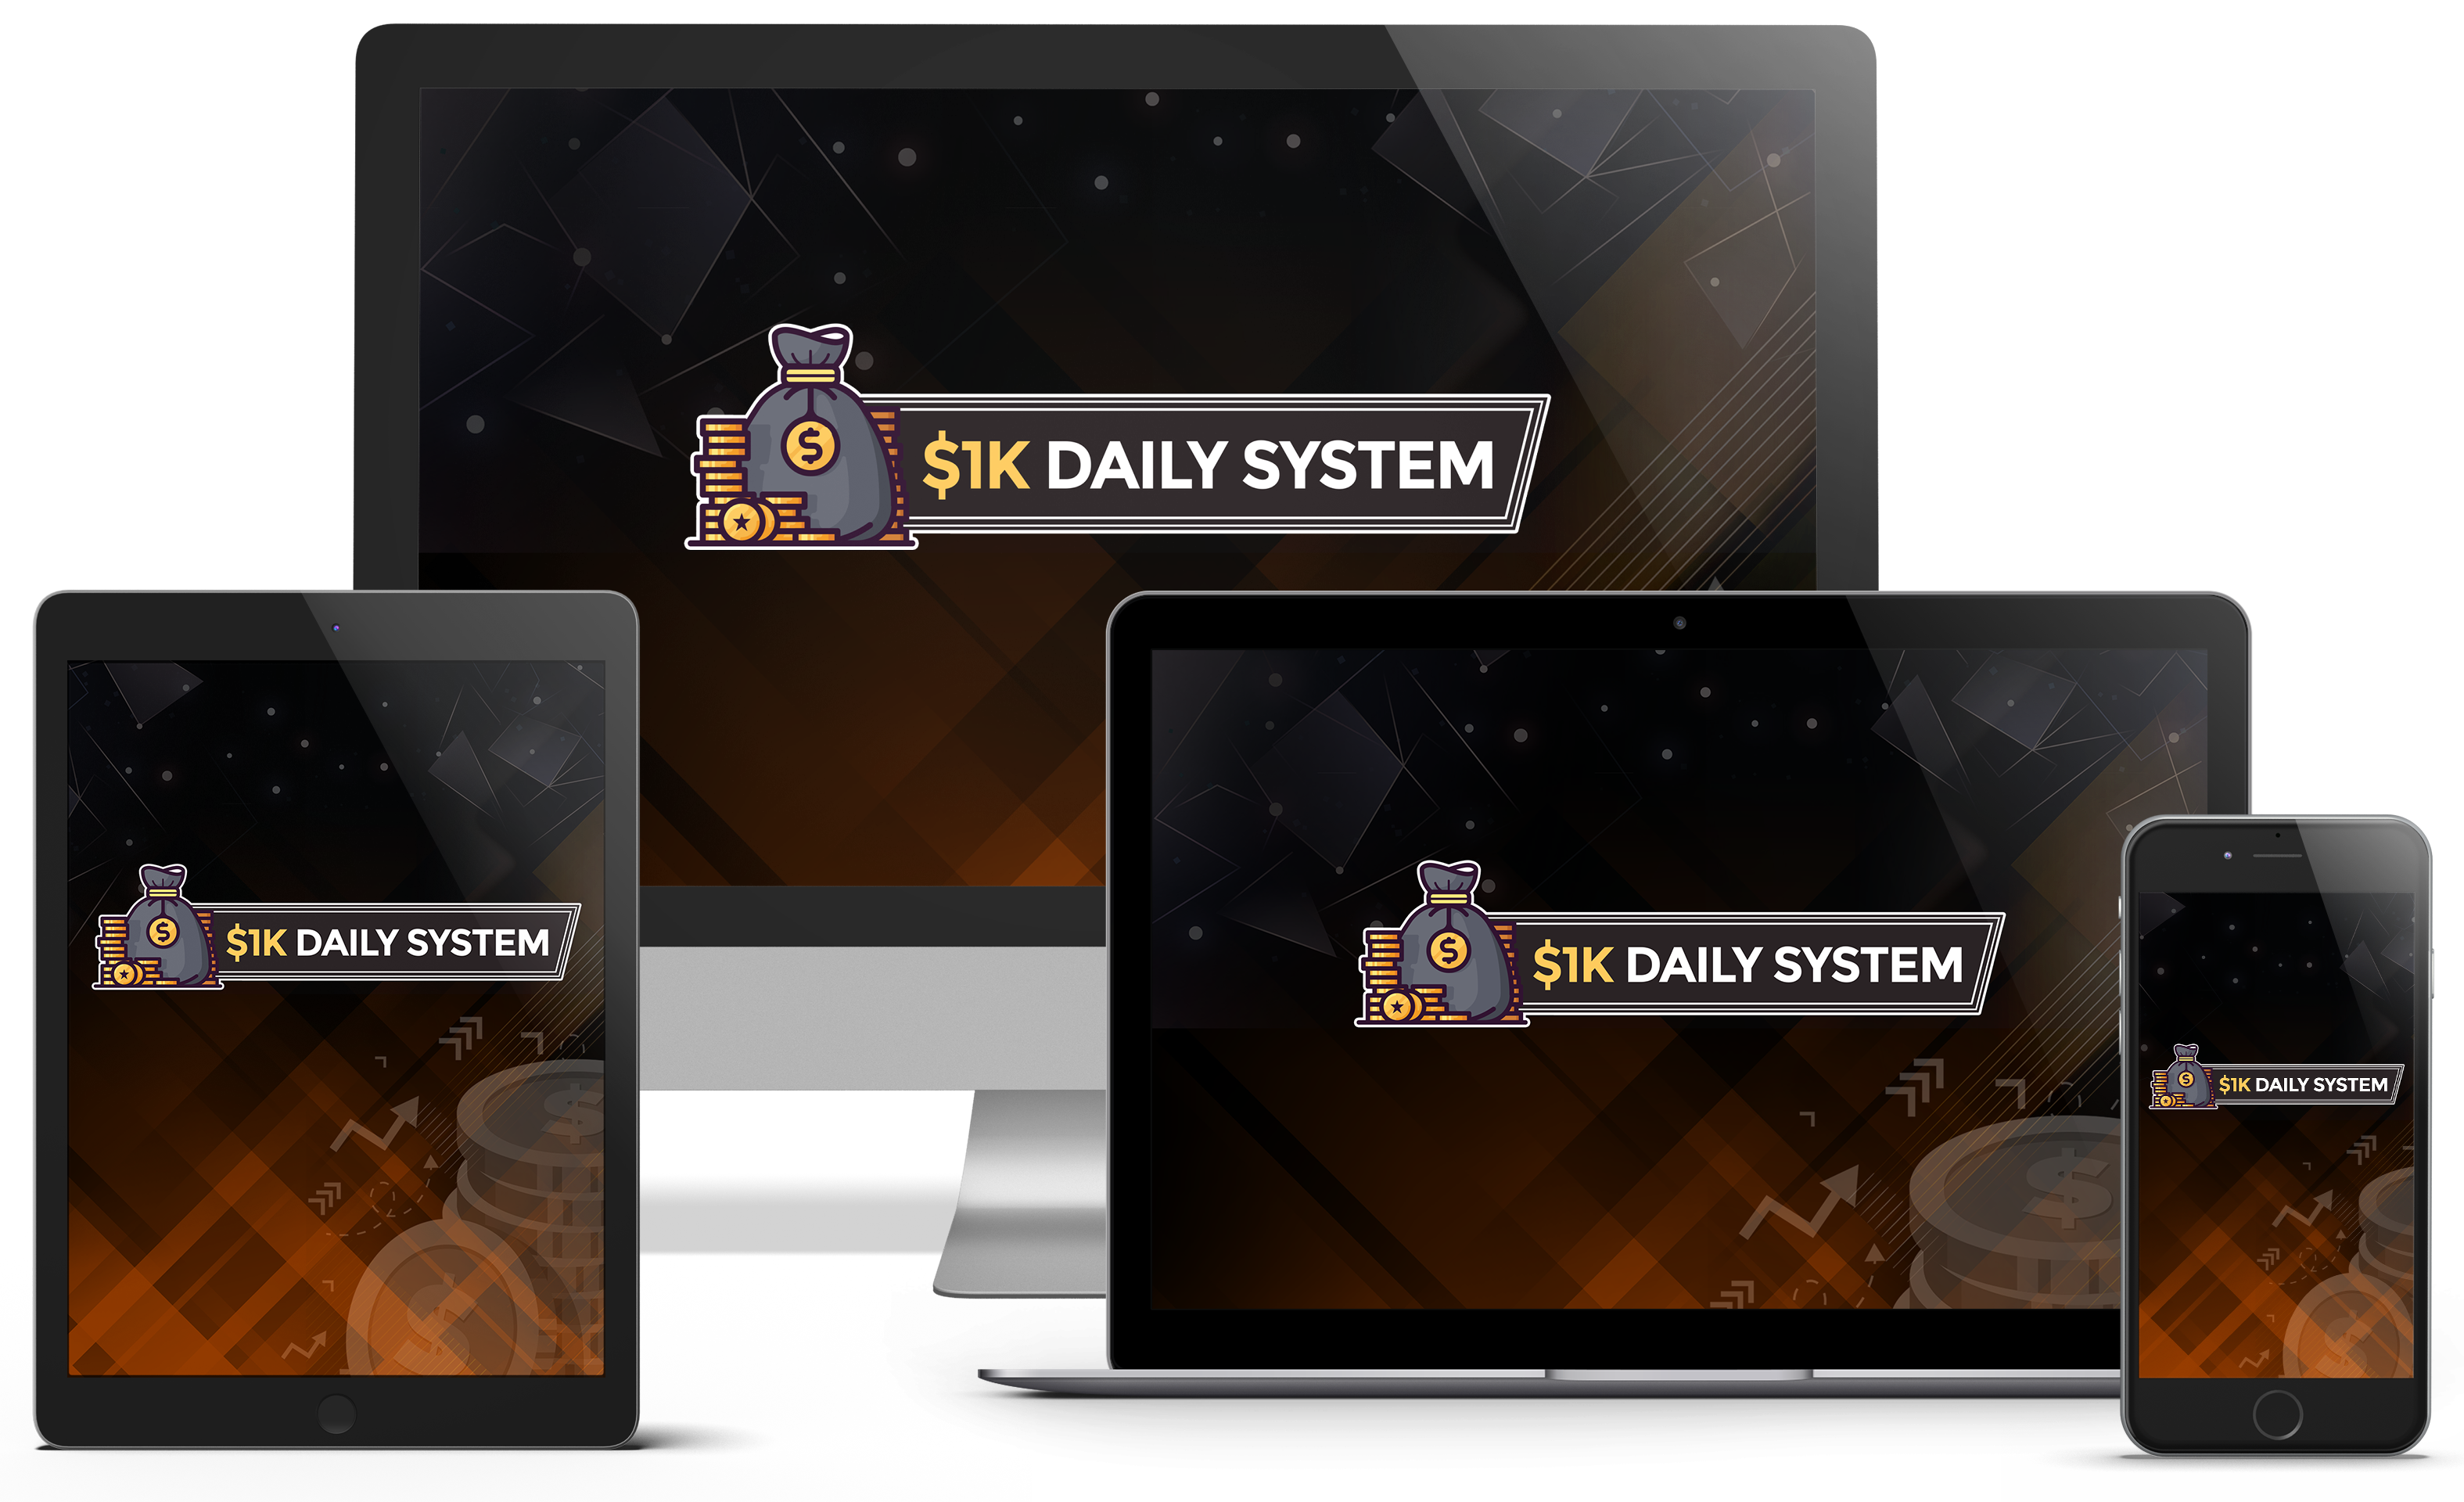 1k daily system